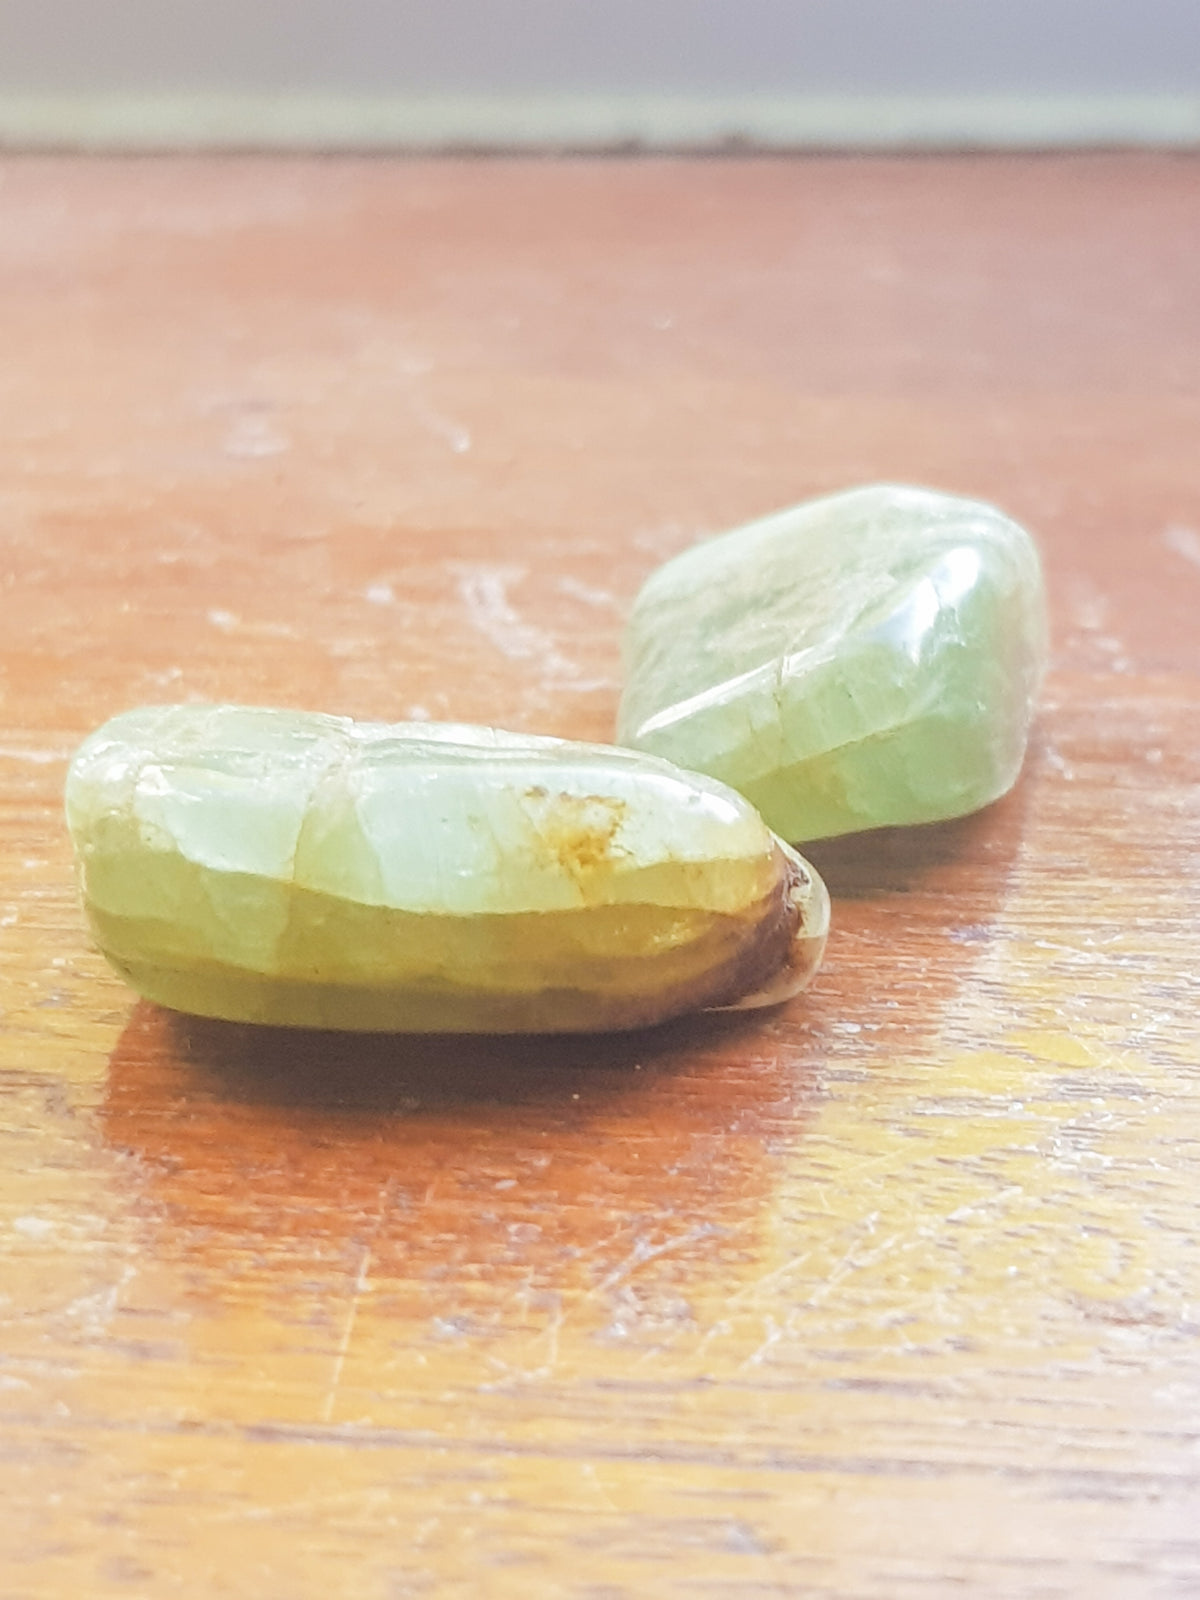 two green aquamarine tumblestones or a dark wood grained surface